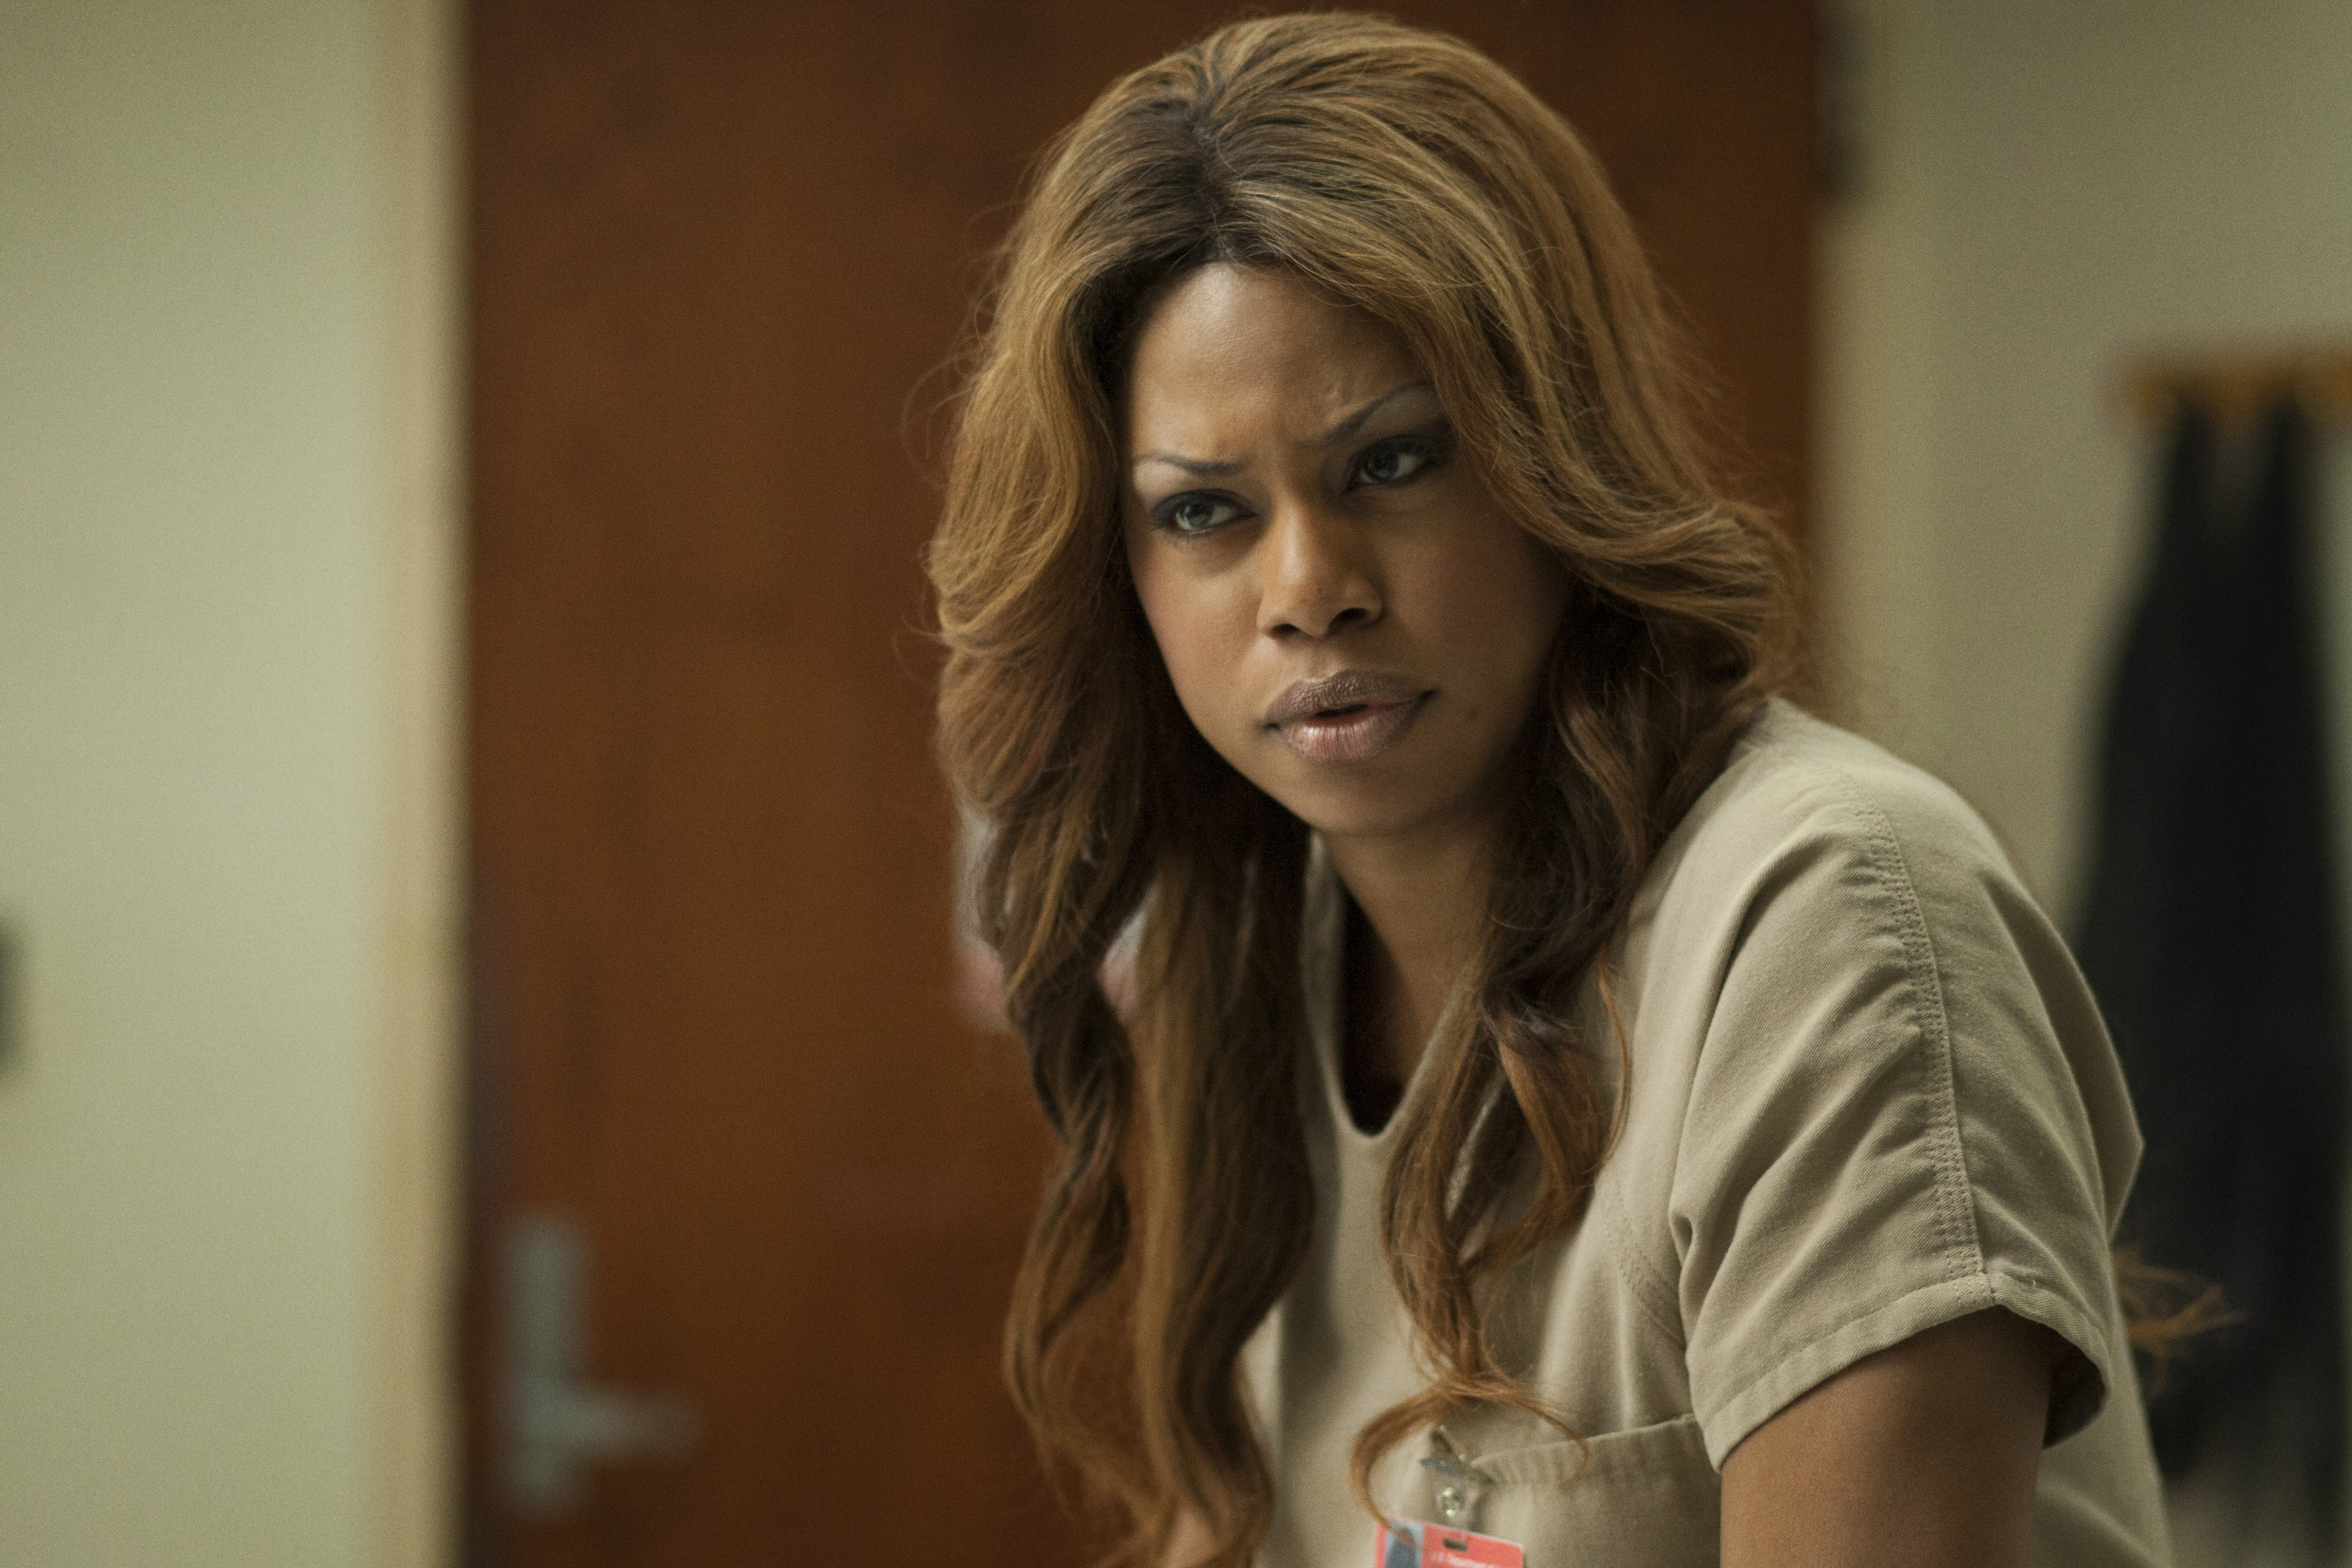 Guest actress, comedy series - Laverne Cox, Orange Is the New Black